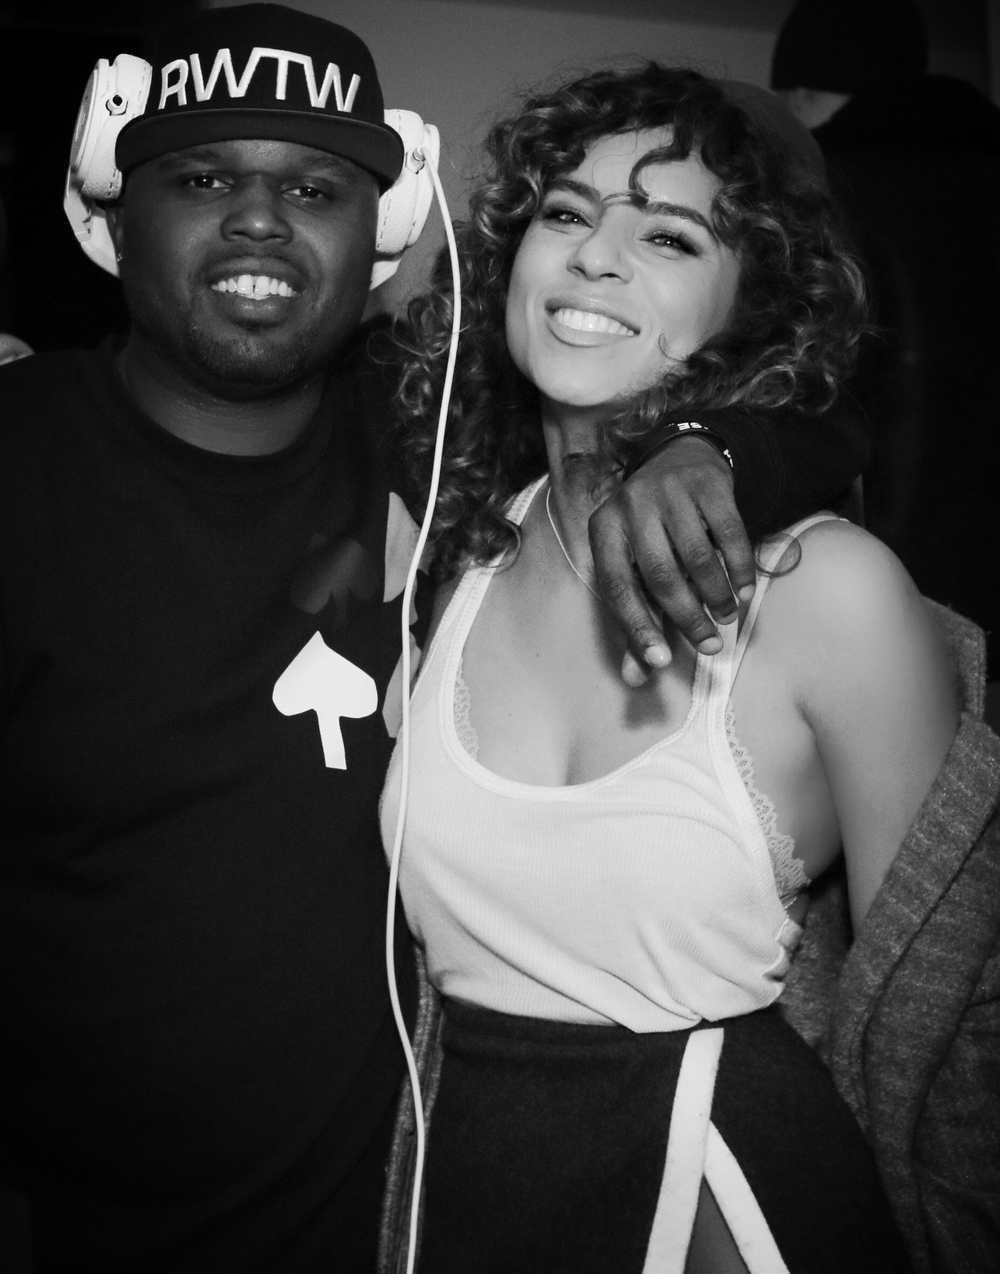 with DJ Steph Floss / House Of Tings